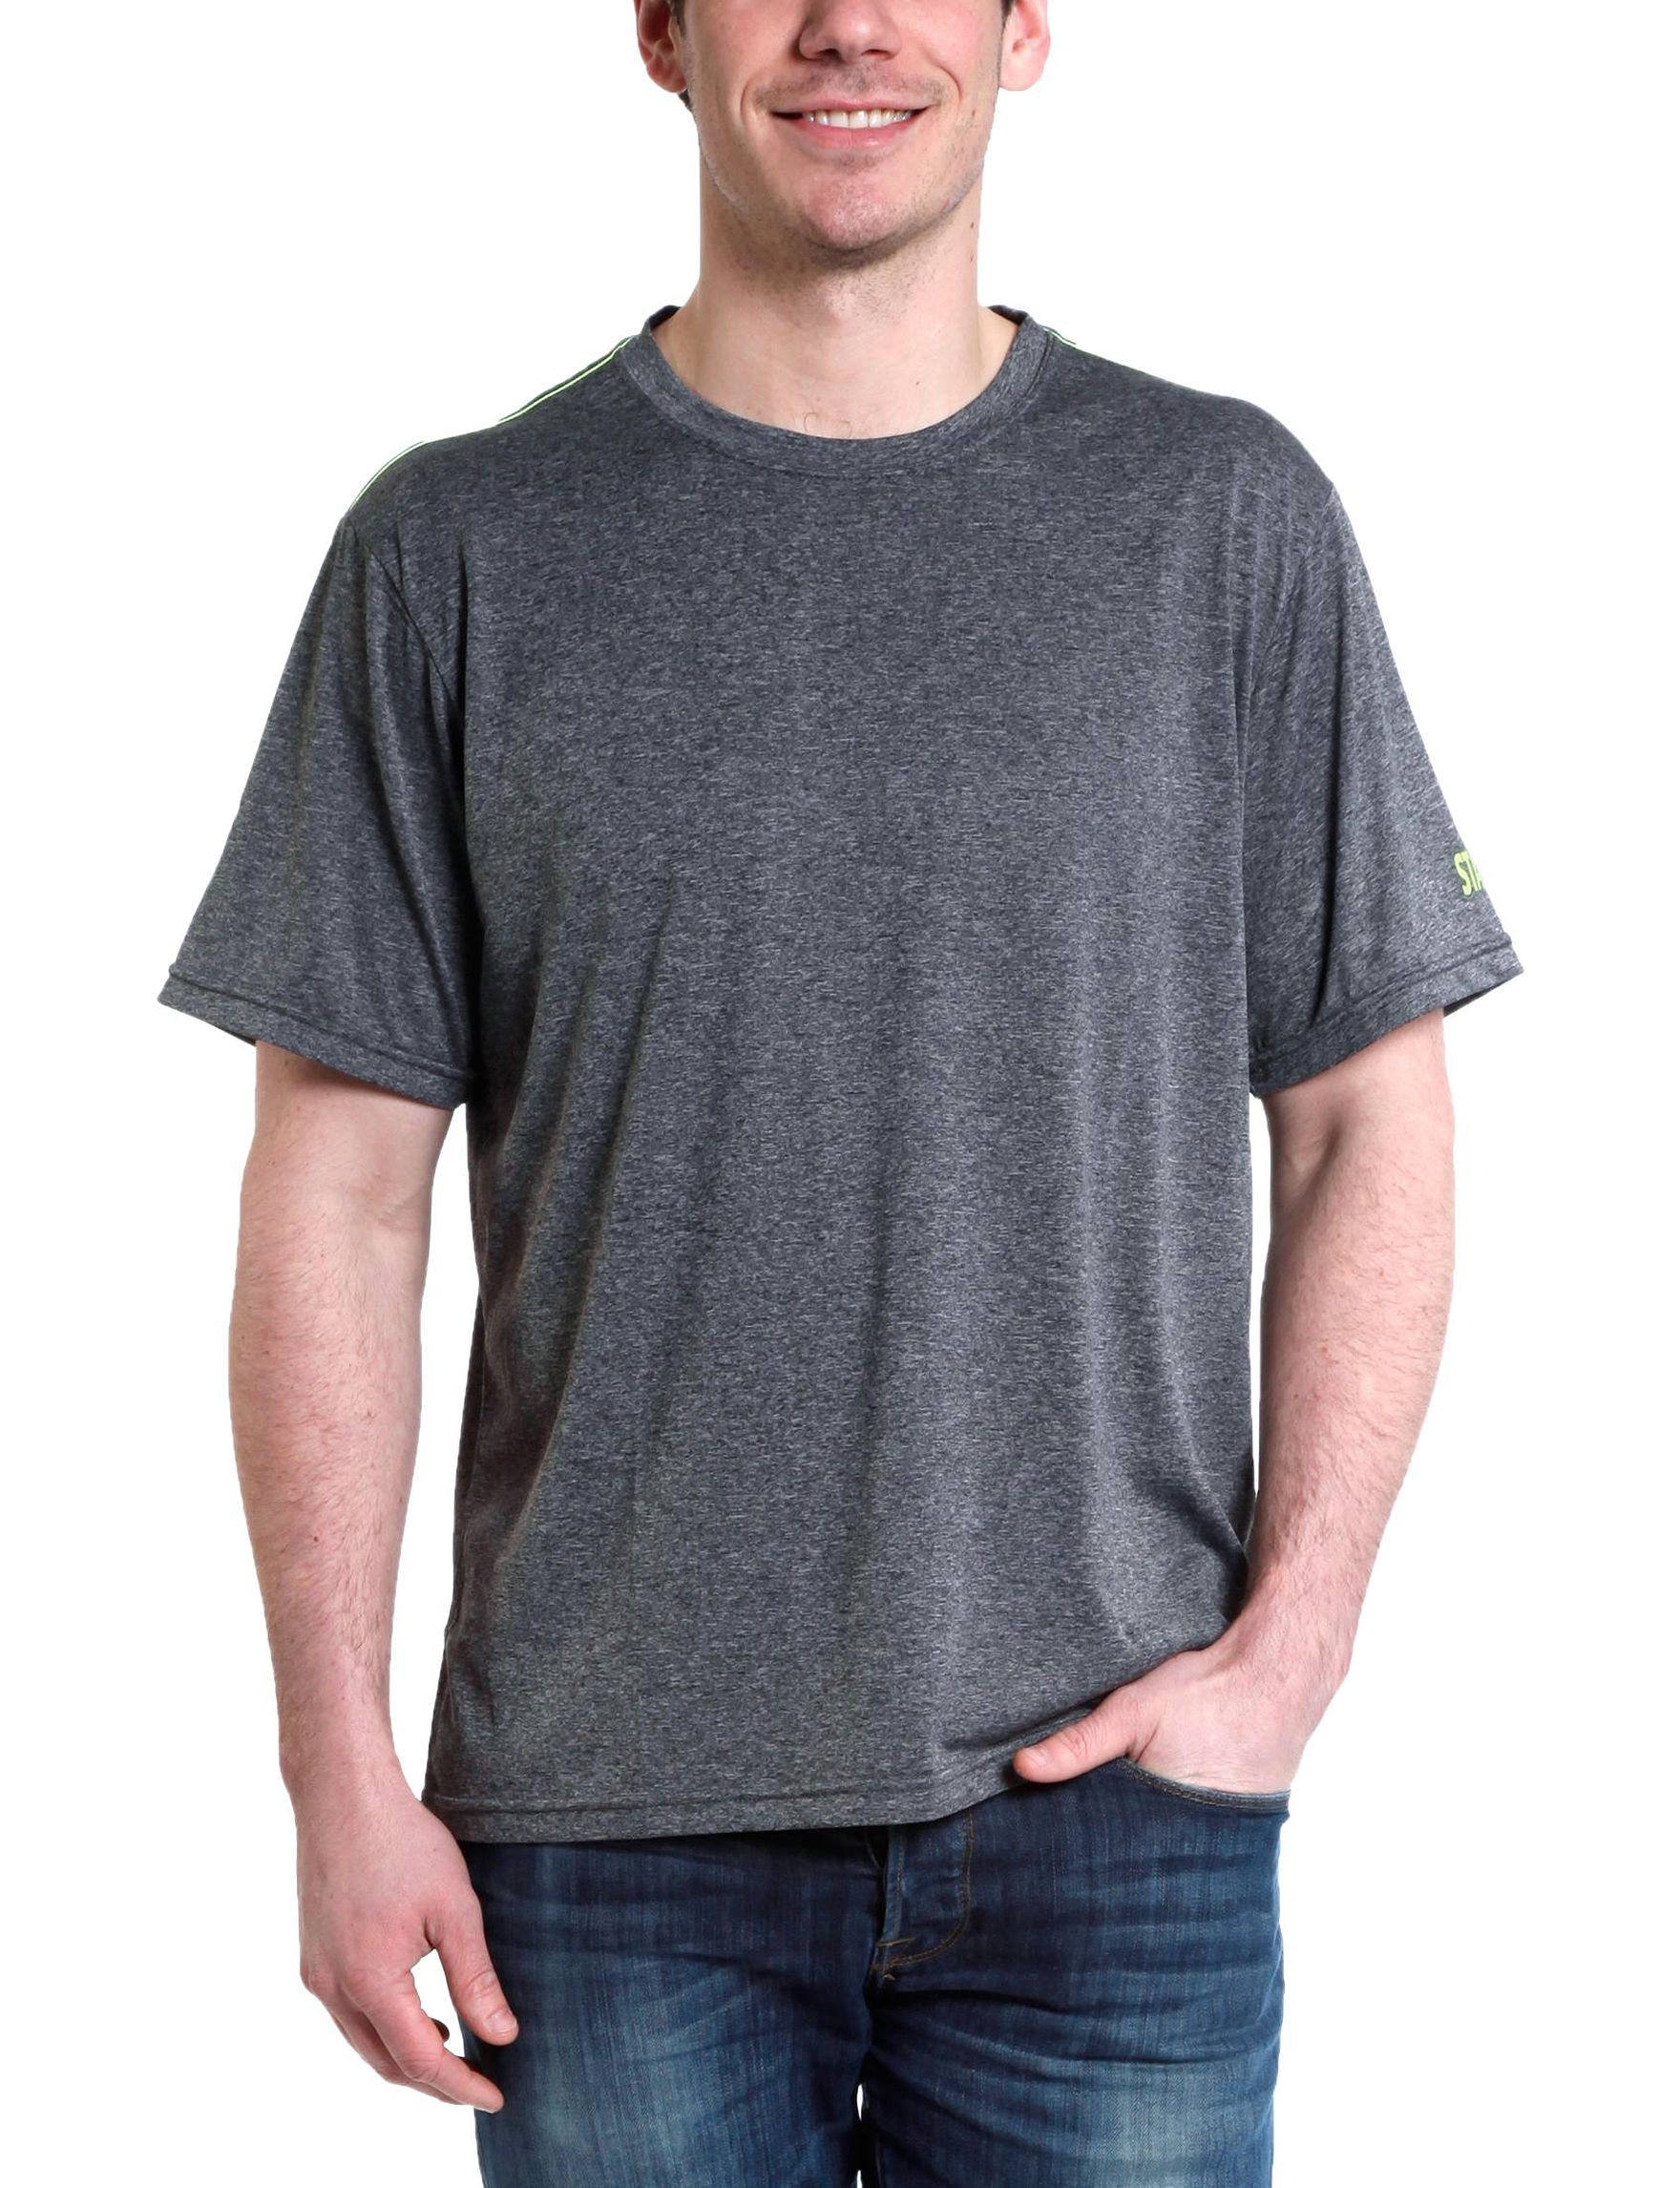 Stanley Charcoal Tees & Tanks